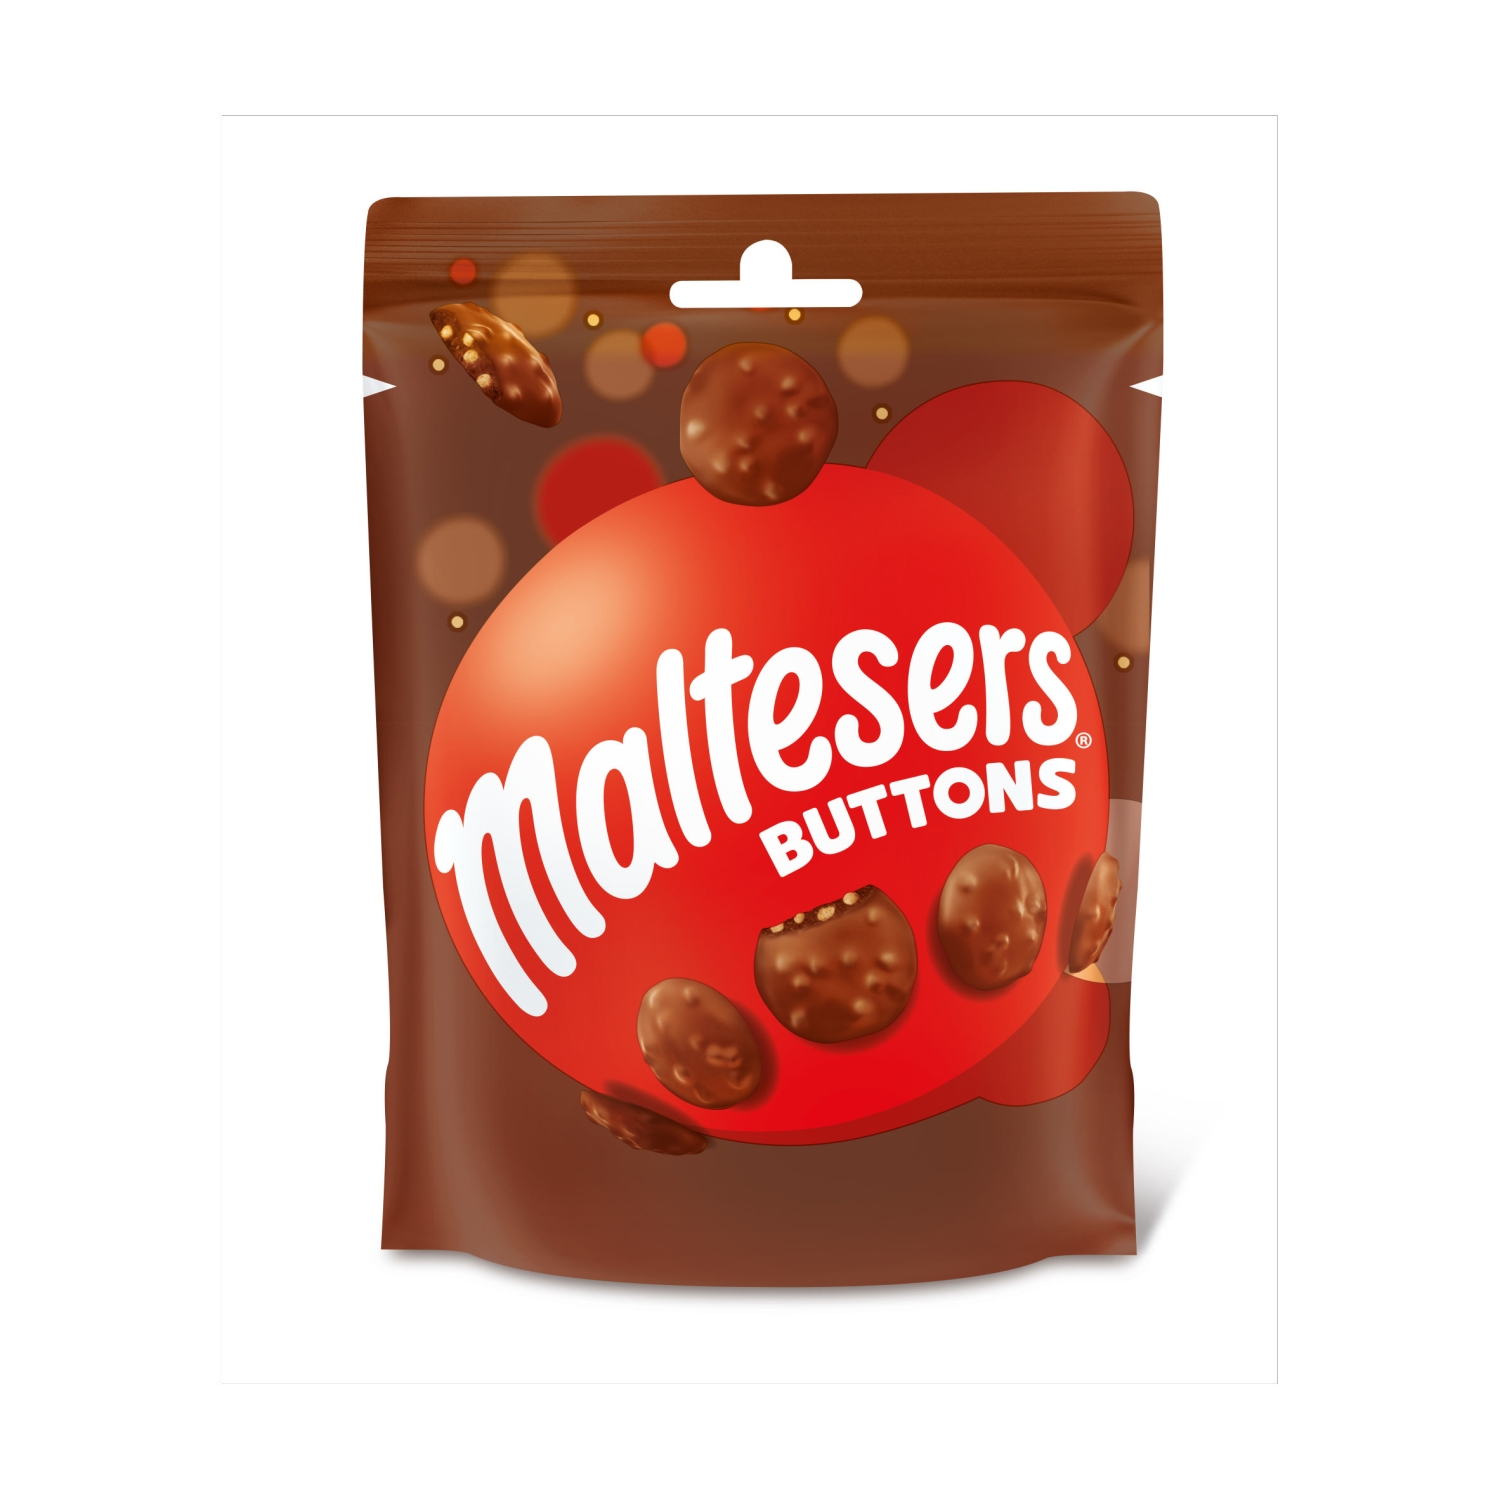 Maltesers Buttons Chocolate Pouch Bag 102g